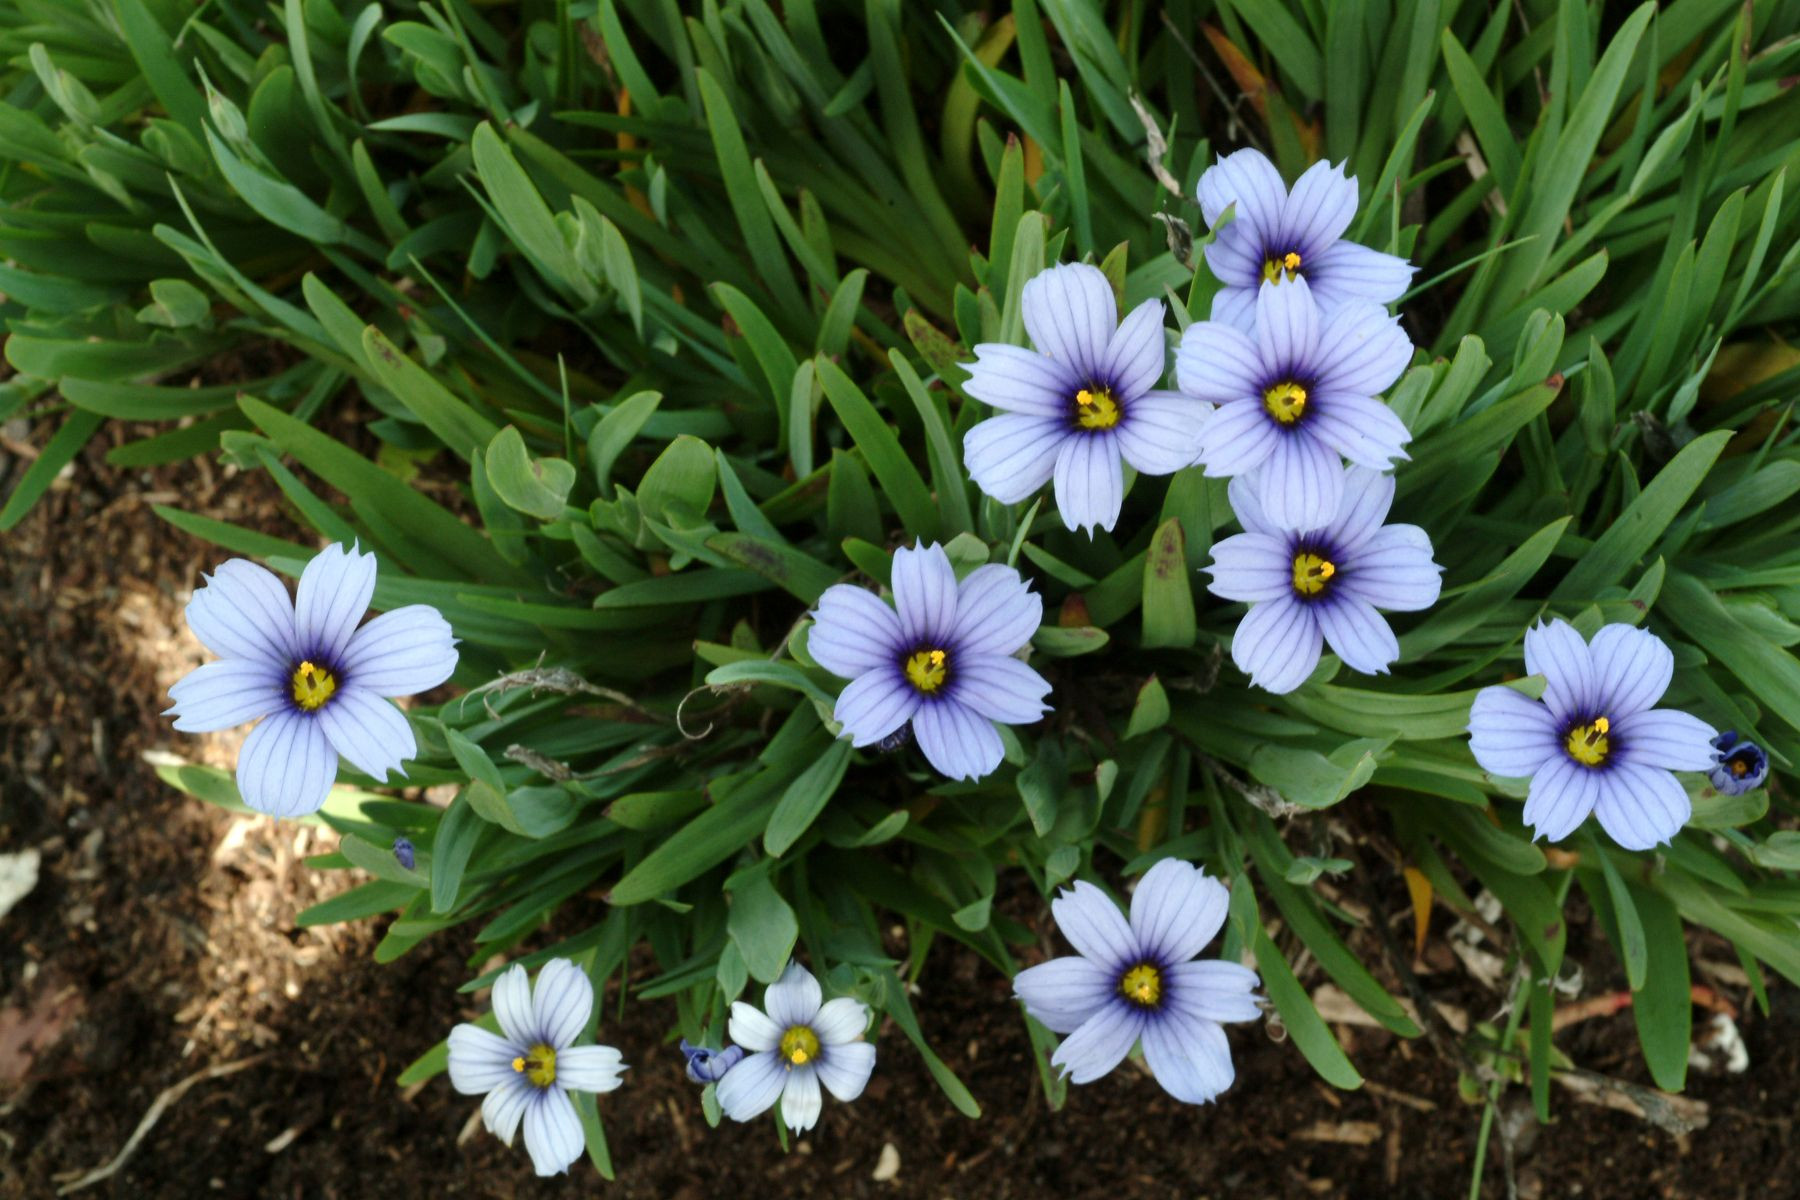 Devon Skies Blue Eyed Grass Monrovia Devon Skies Blue Eyed Grass